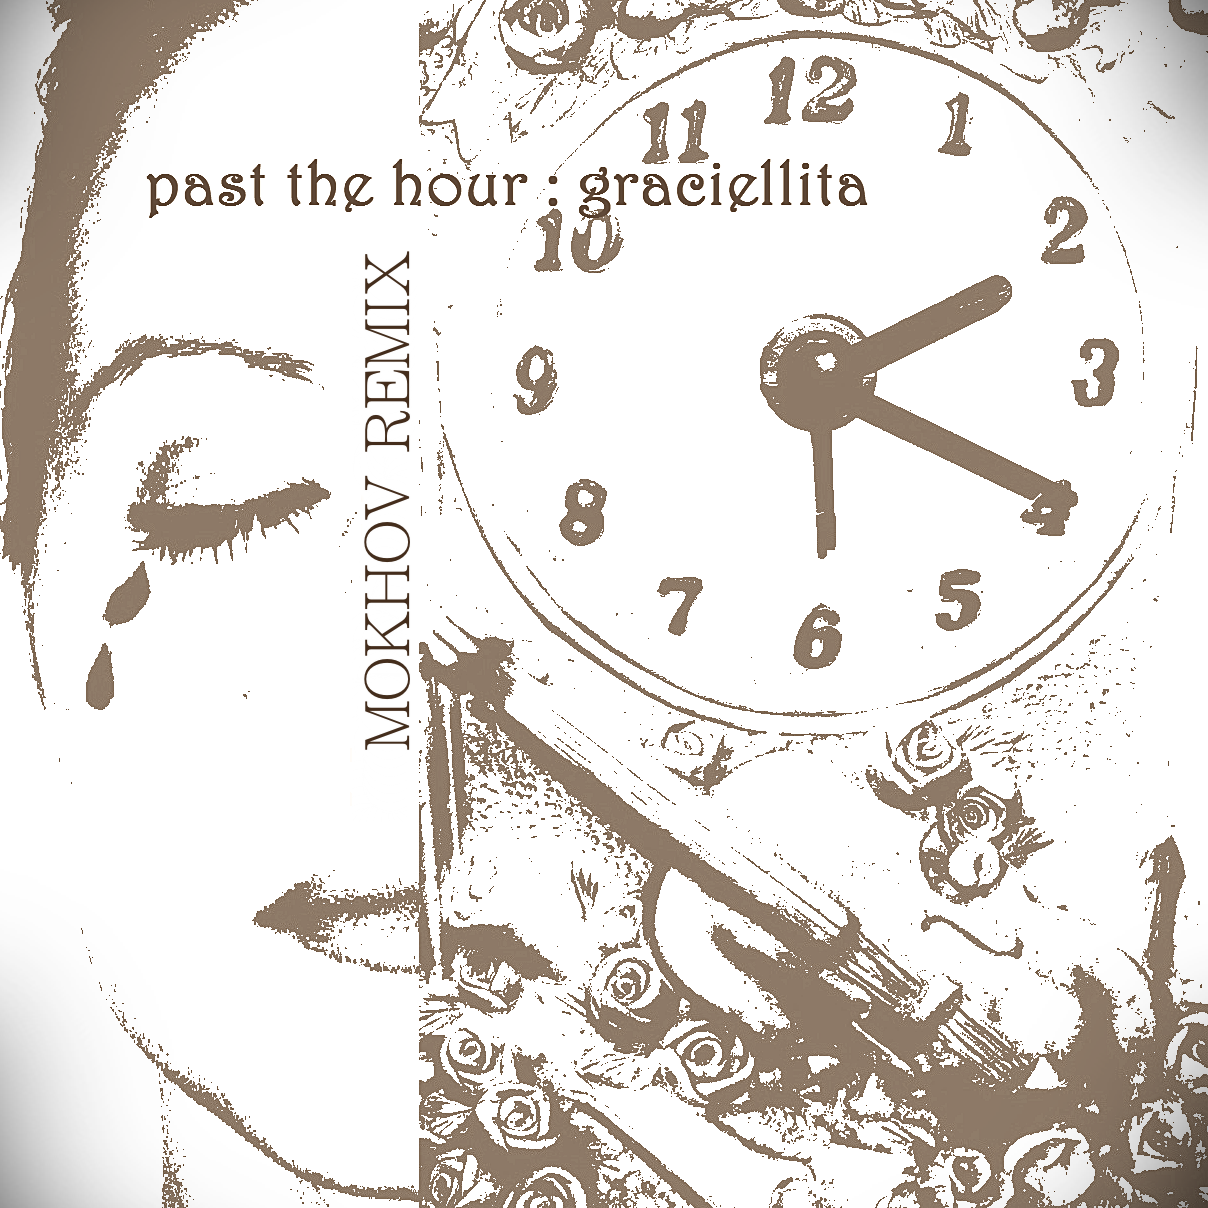 http://www.neferiu.com/wp-content/uploads/2011/09/Graciellita-Past-the-Hour-Mokhov-Remix-Cover.png